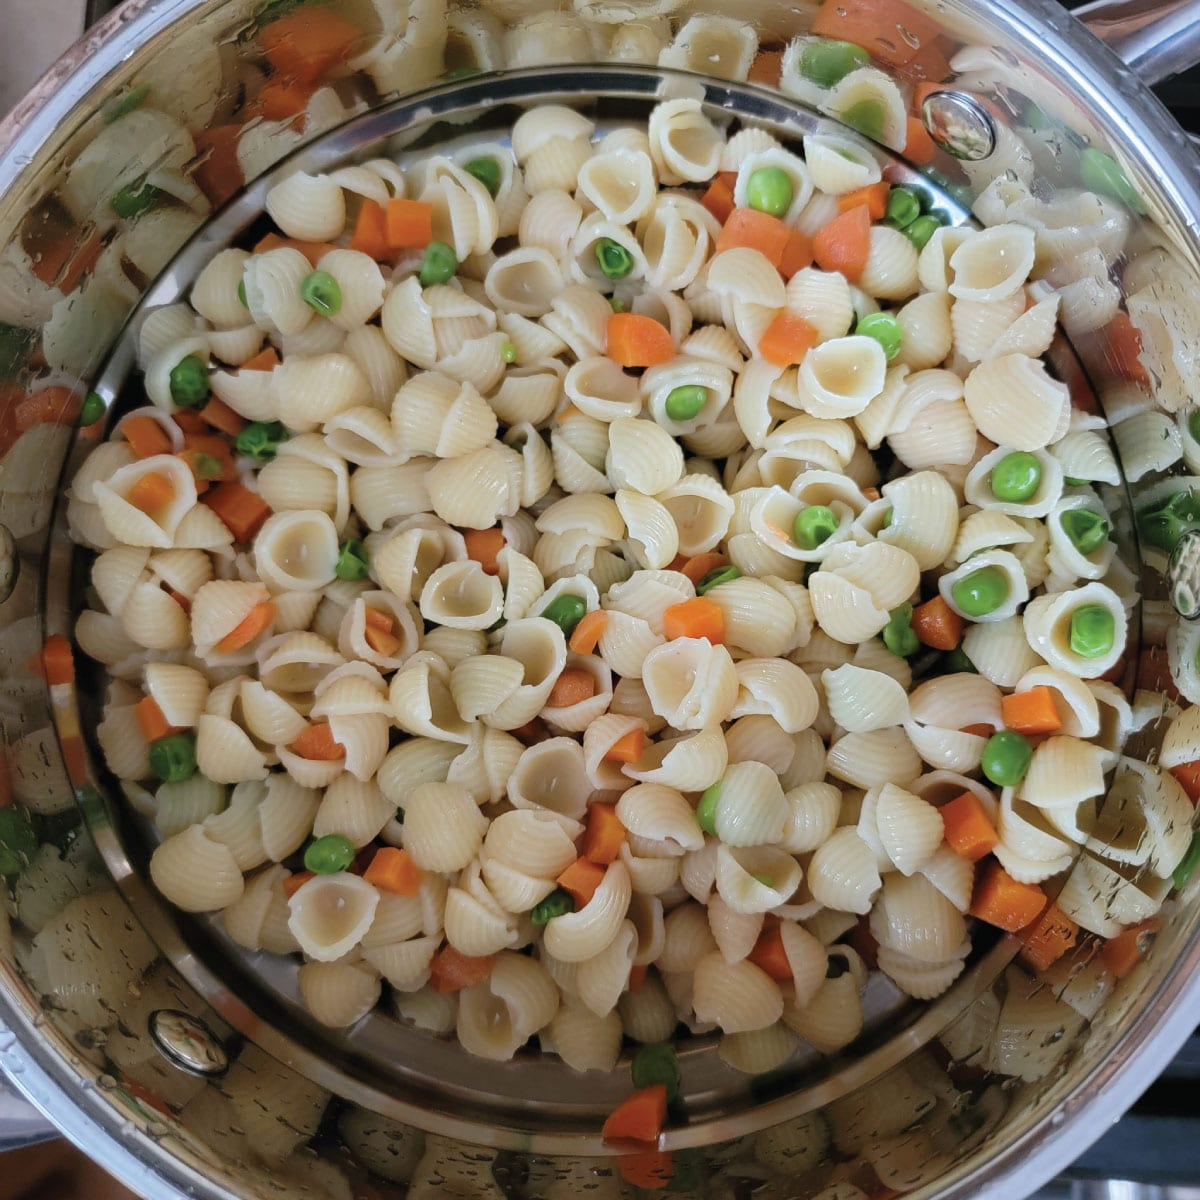 small shells, peas and carrots together in a strainer after being cooked and drained.